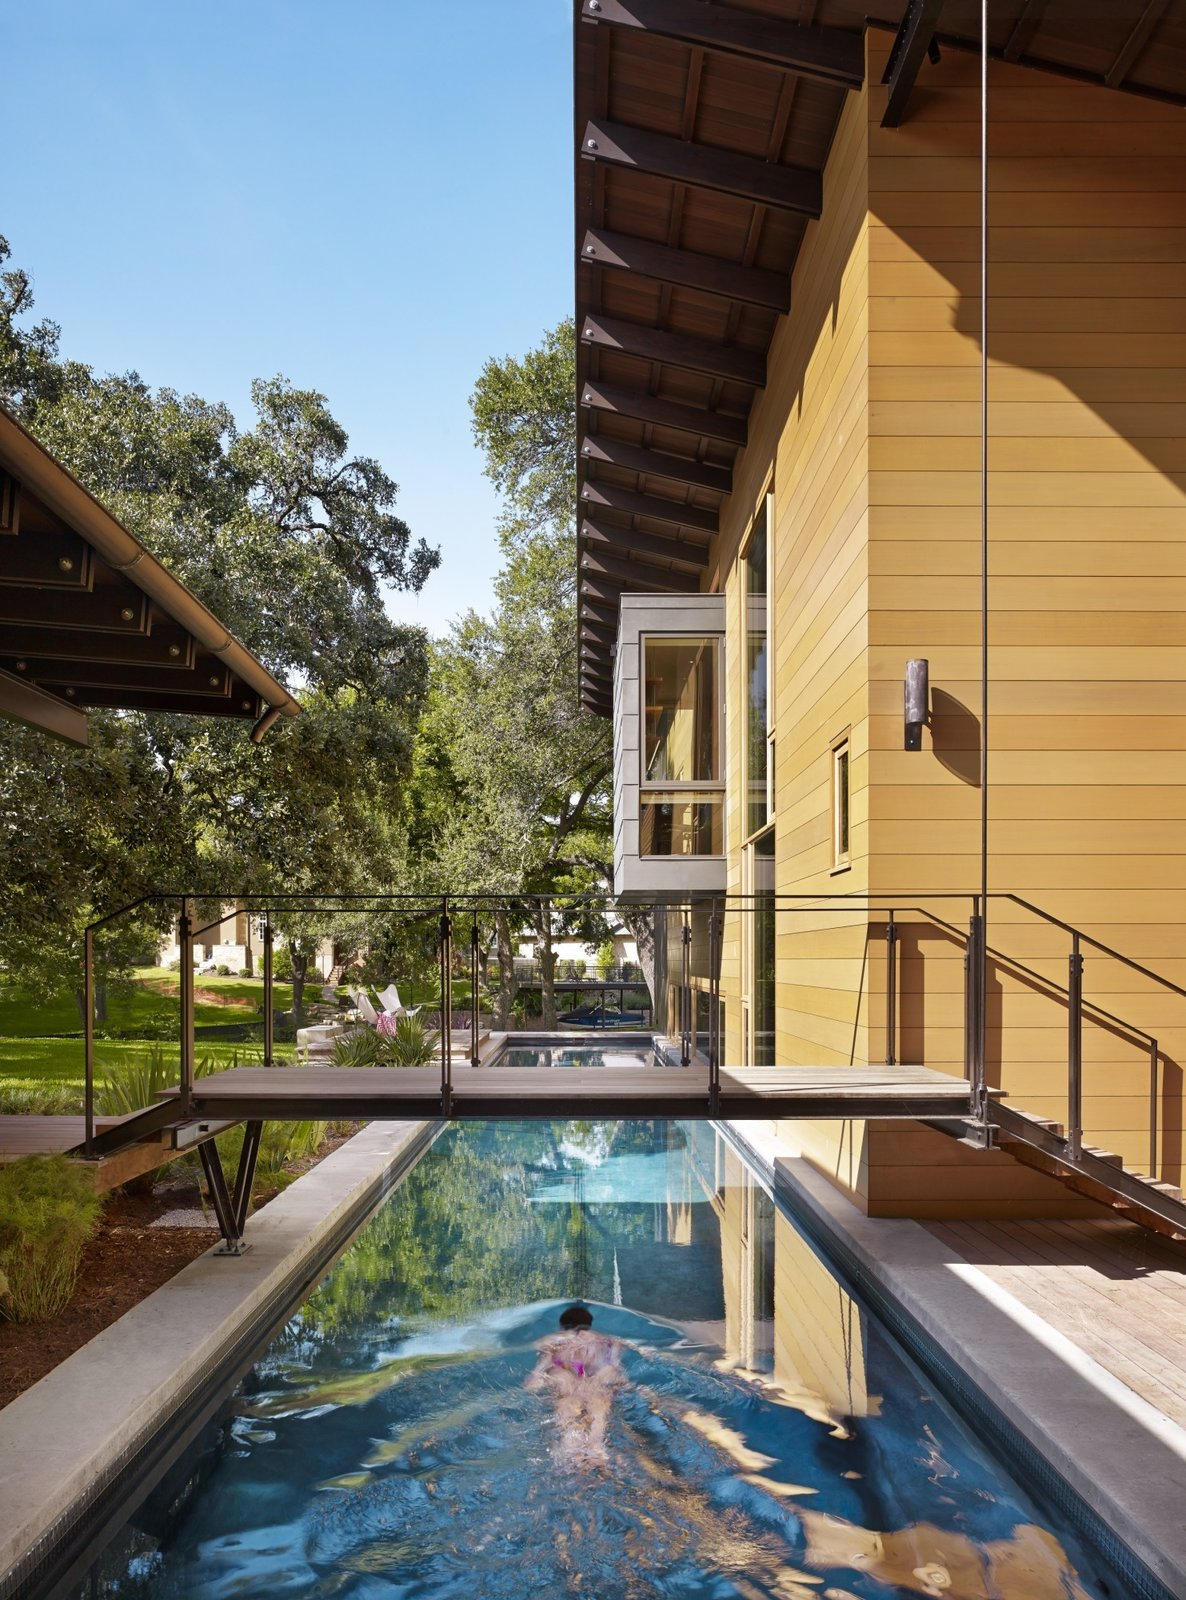 """""""The owners envisioned a place that engaged with the outdoors while providing accommodating spaces for their off-season training for triathlons,"""" Flato notes. A 75-foot-long lap pool on the west end of the home comes in handy during practice."""